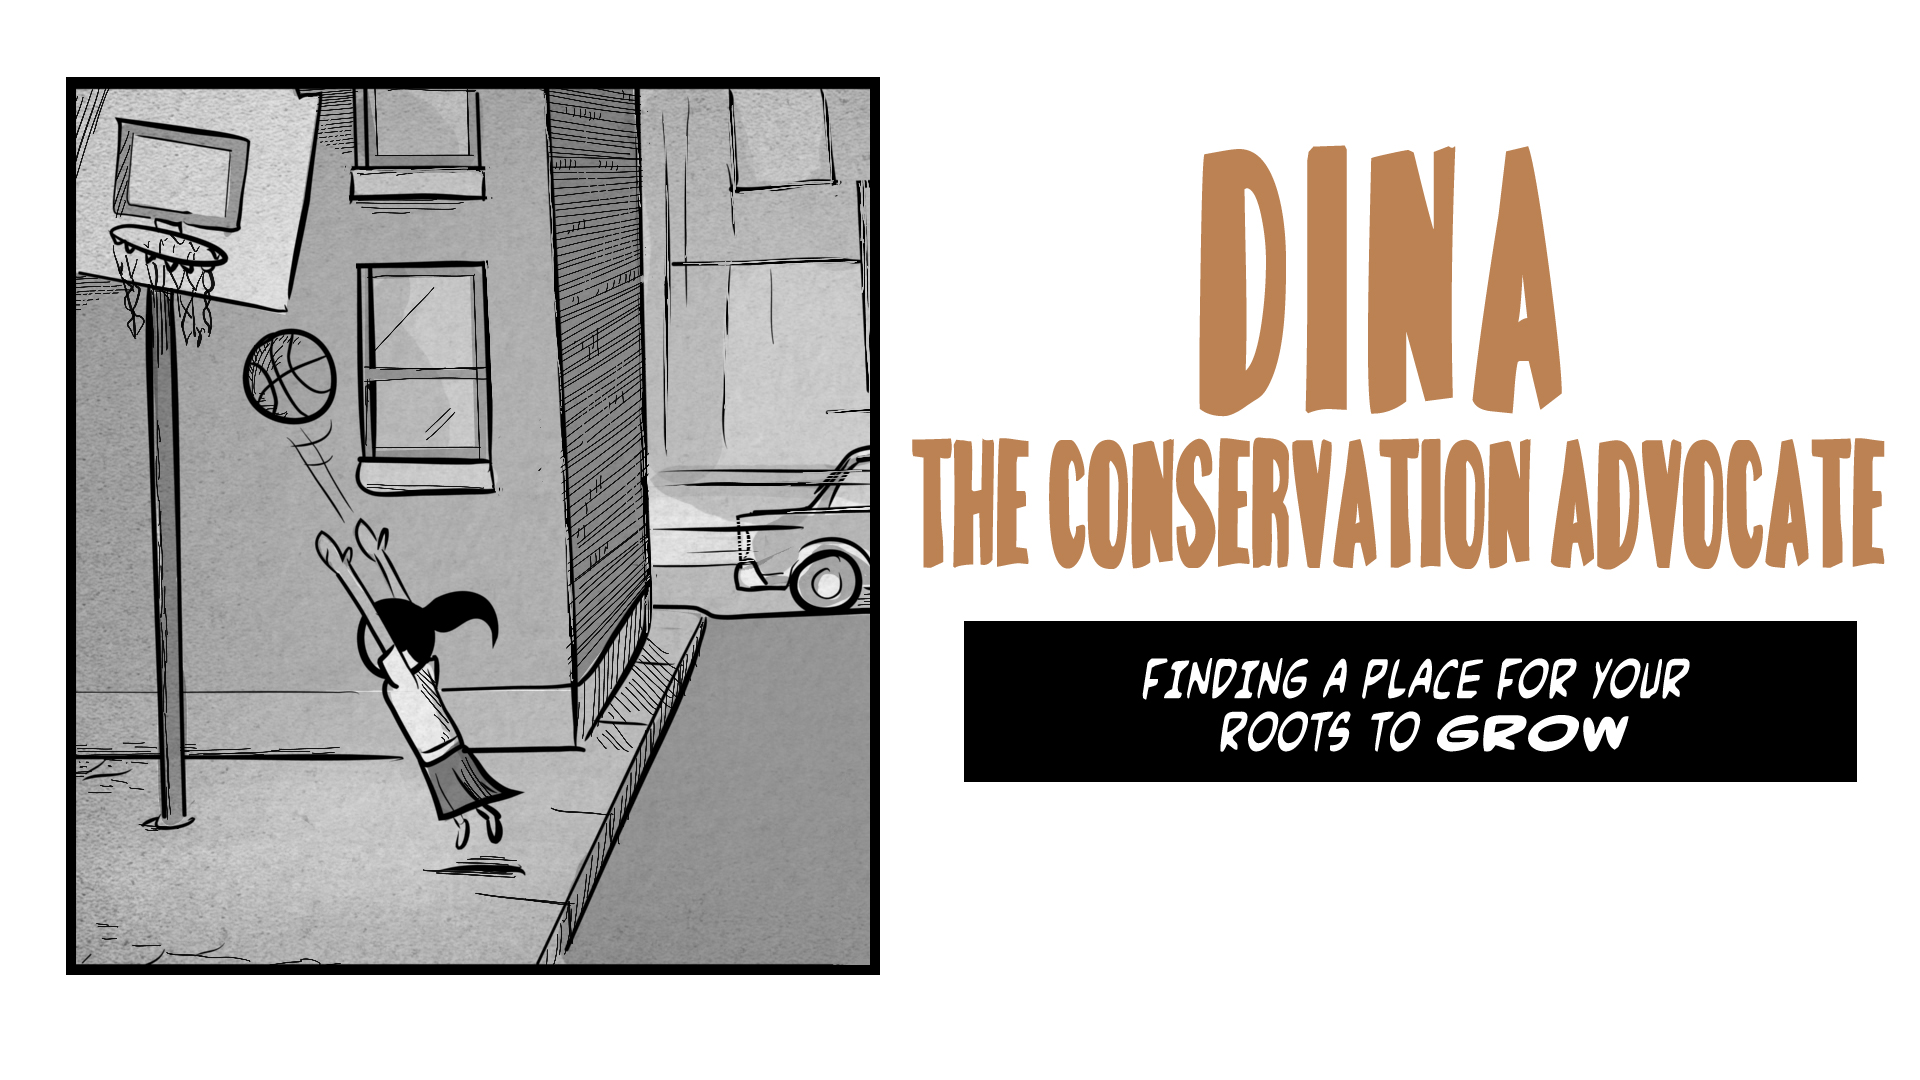 Story title:  Dina, the Conservation Advocate.  Finding a place for your roots to grow.